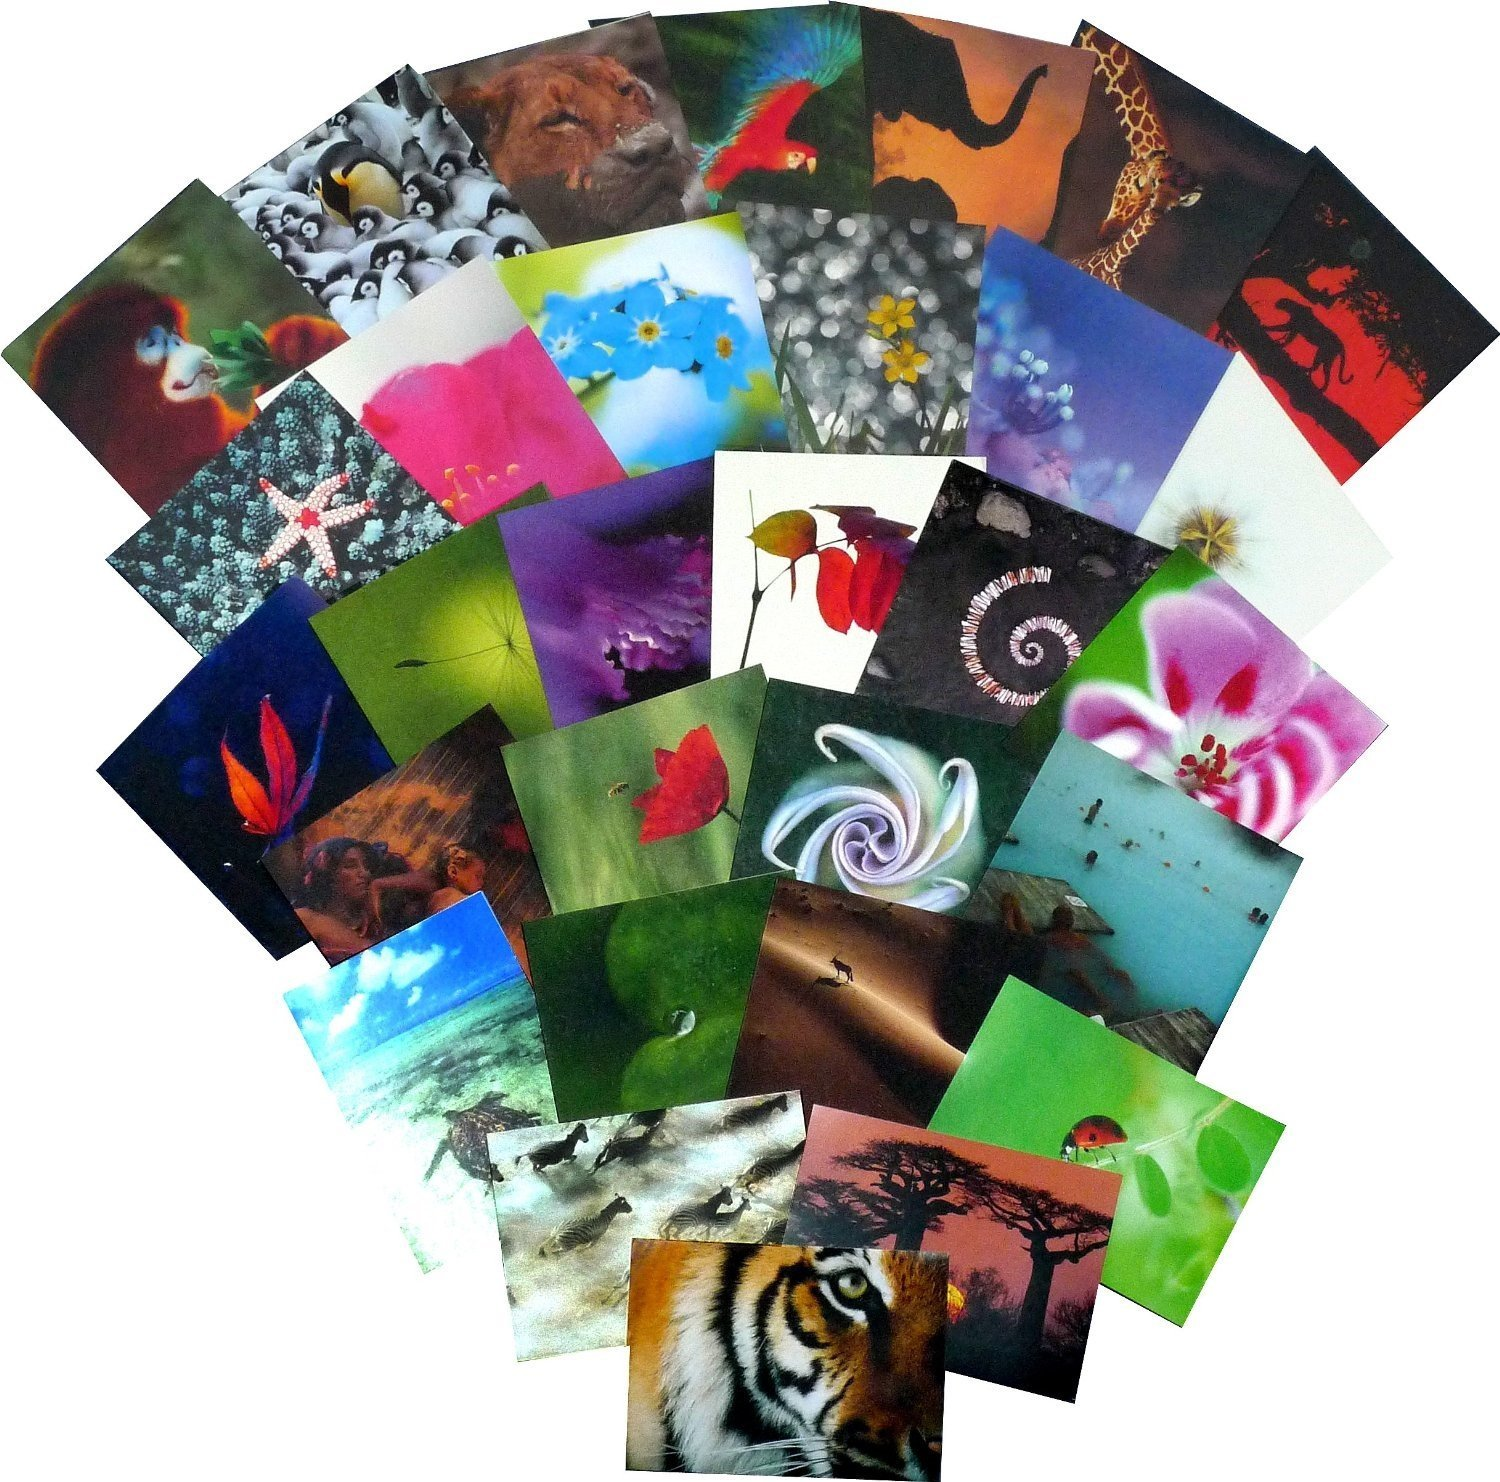 Great value greetings card collection. 30 Carbon Neutral 'The Natural World' cards (all different designs). BritanniaCards S476KP08